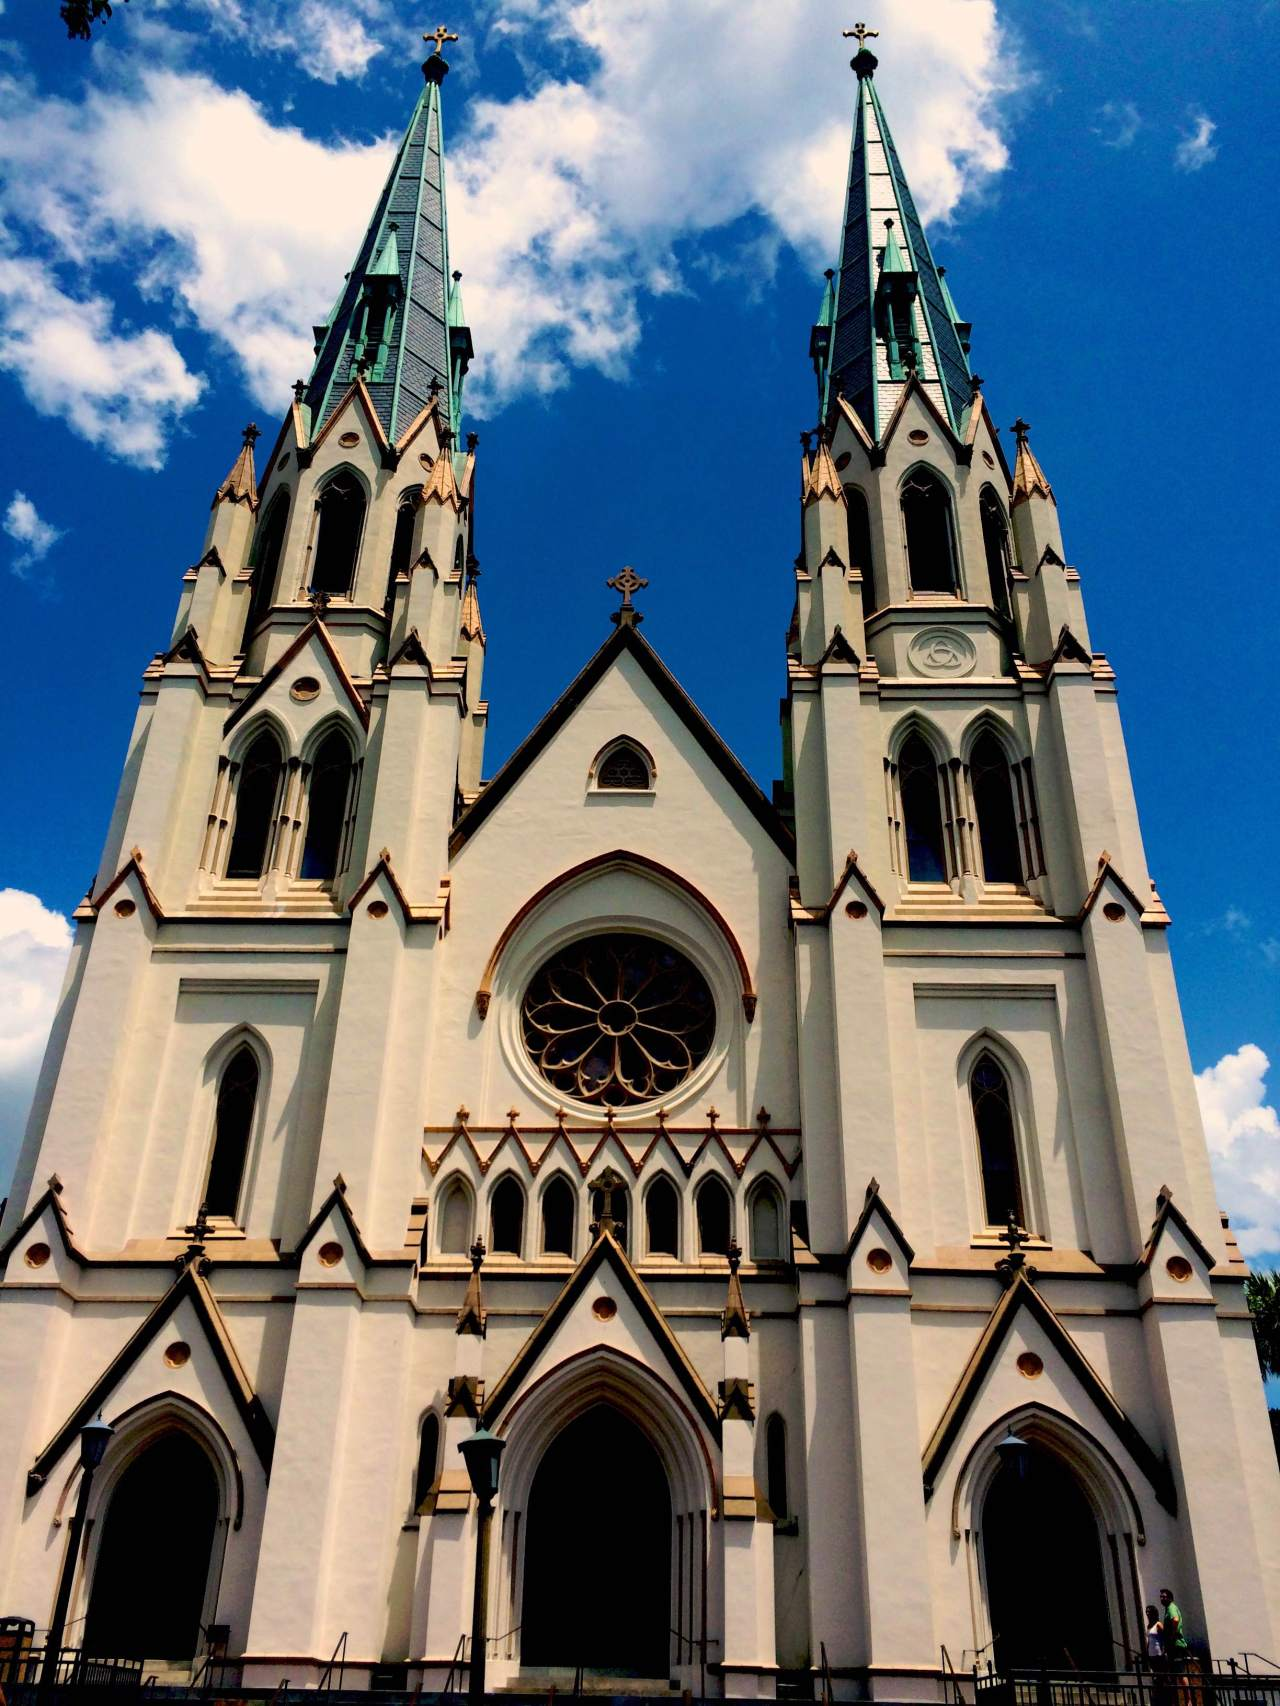 Today's On the Go Photo: Cathedral of Saint John the Baptist